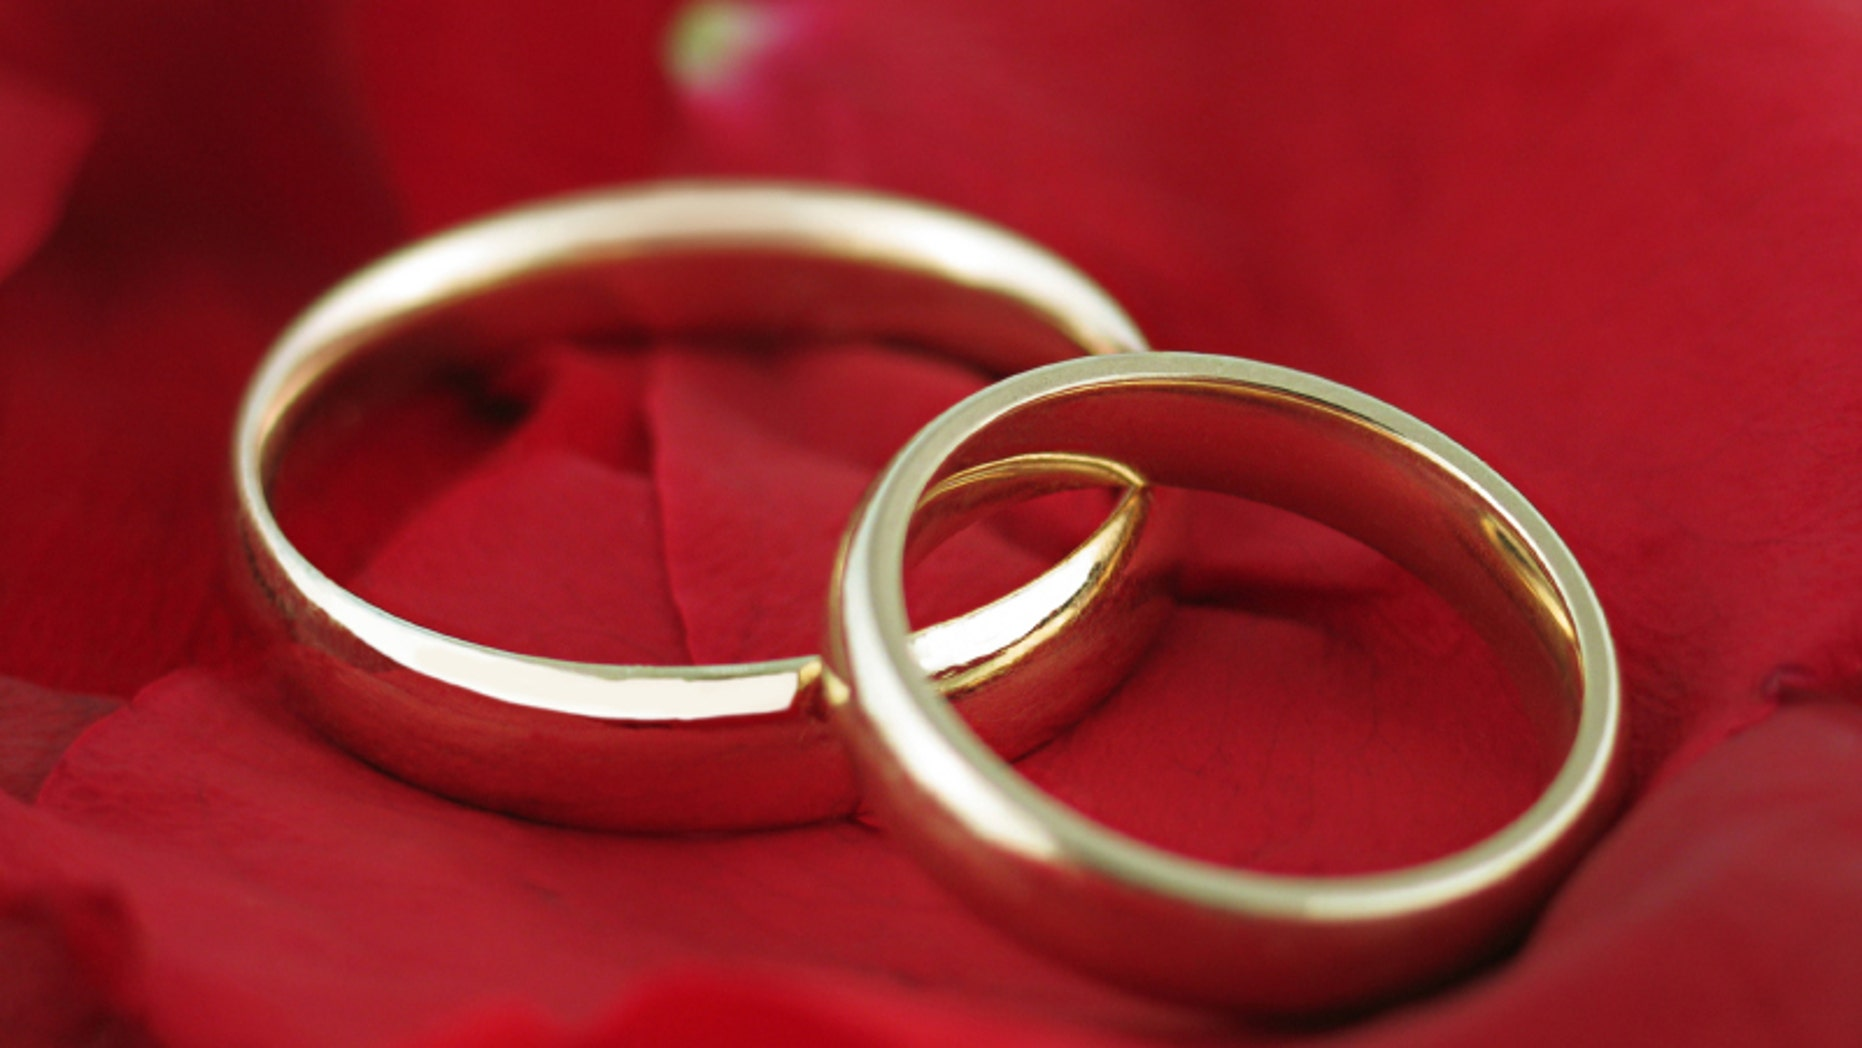 Watch 10 Interesting Facts About Marriage video